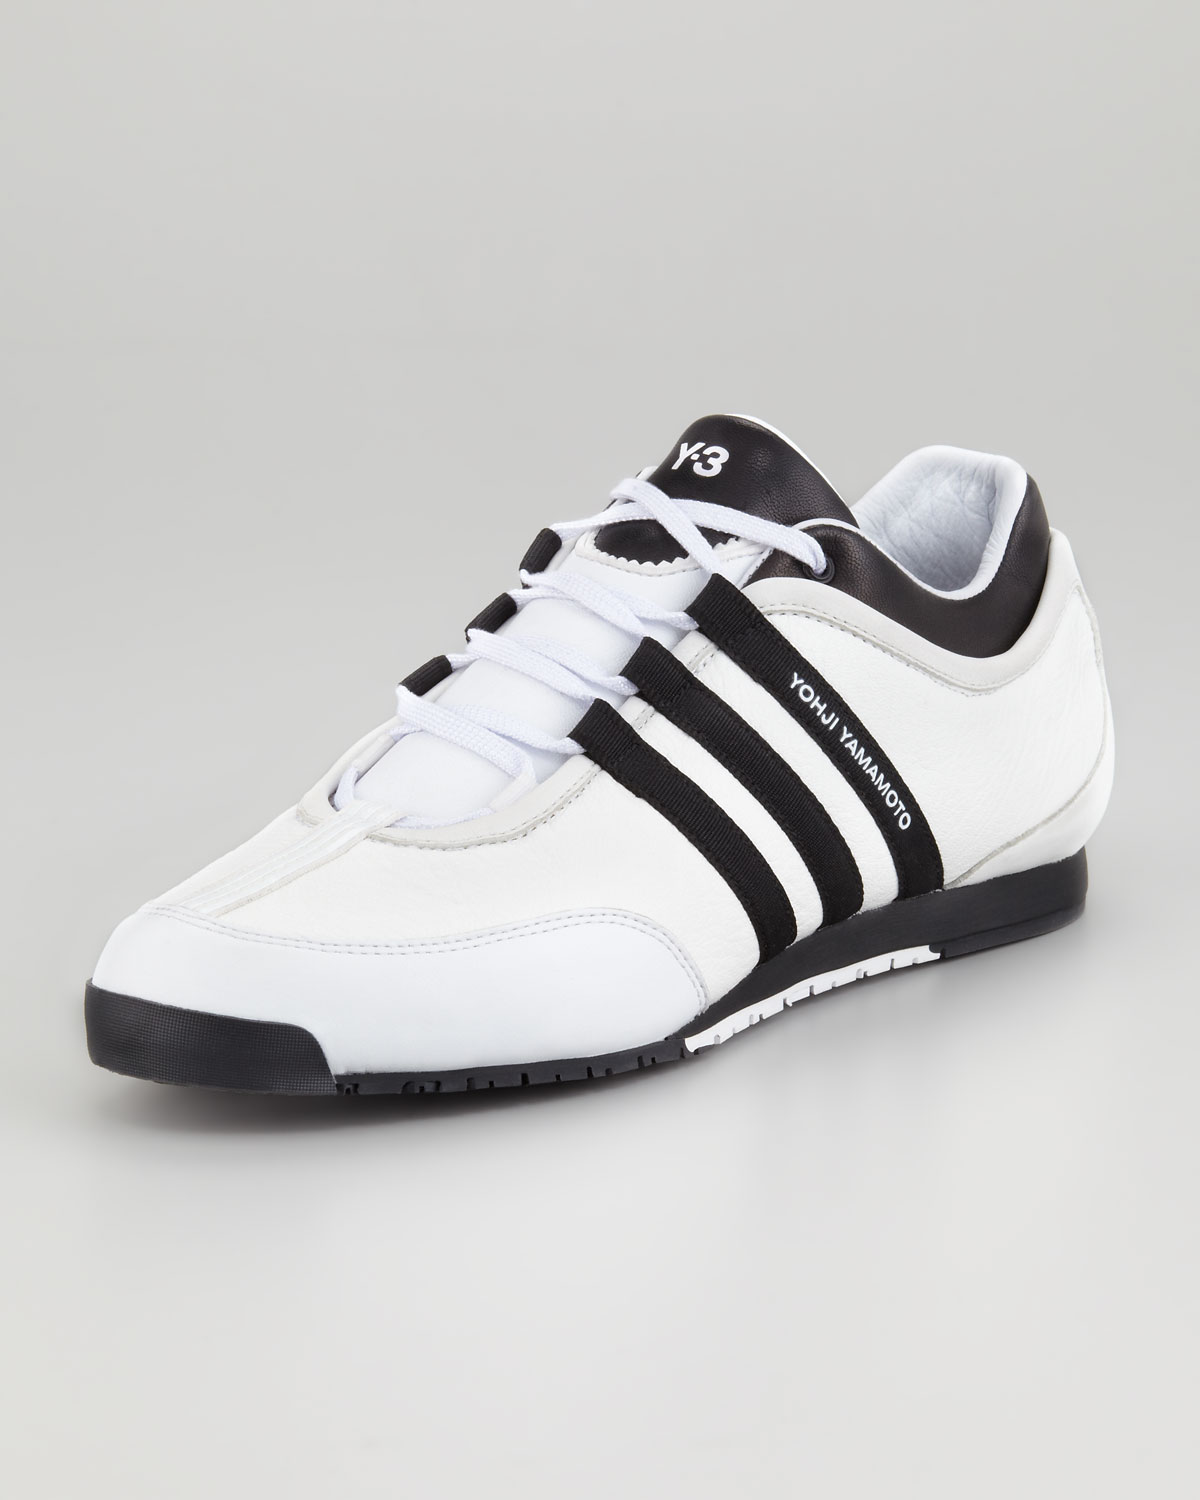 a98bf1abf27 Lyst - Y-3 Boxing Sneaker White in White for Men